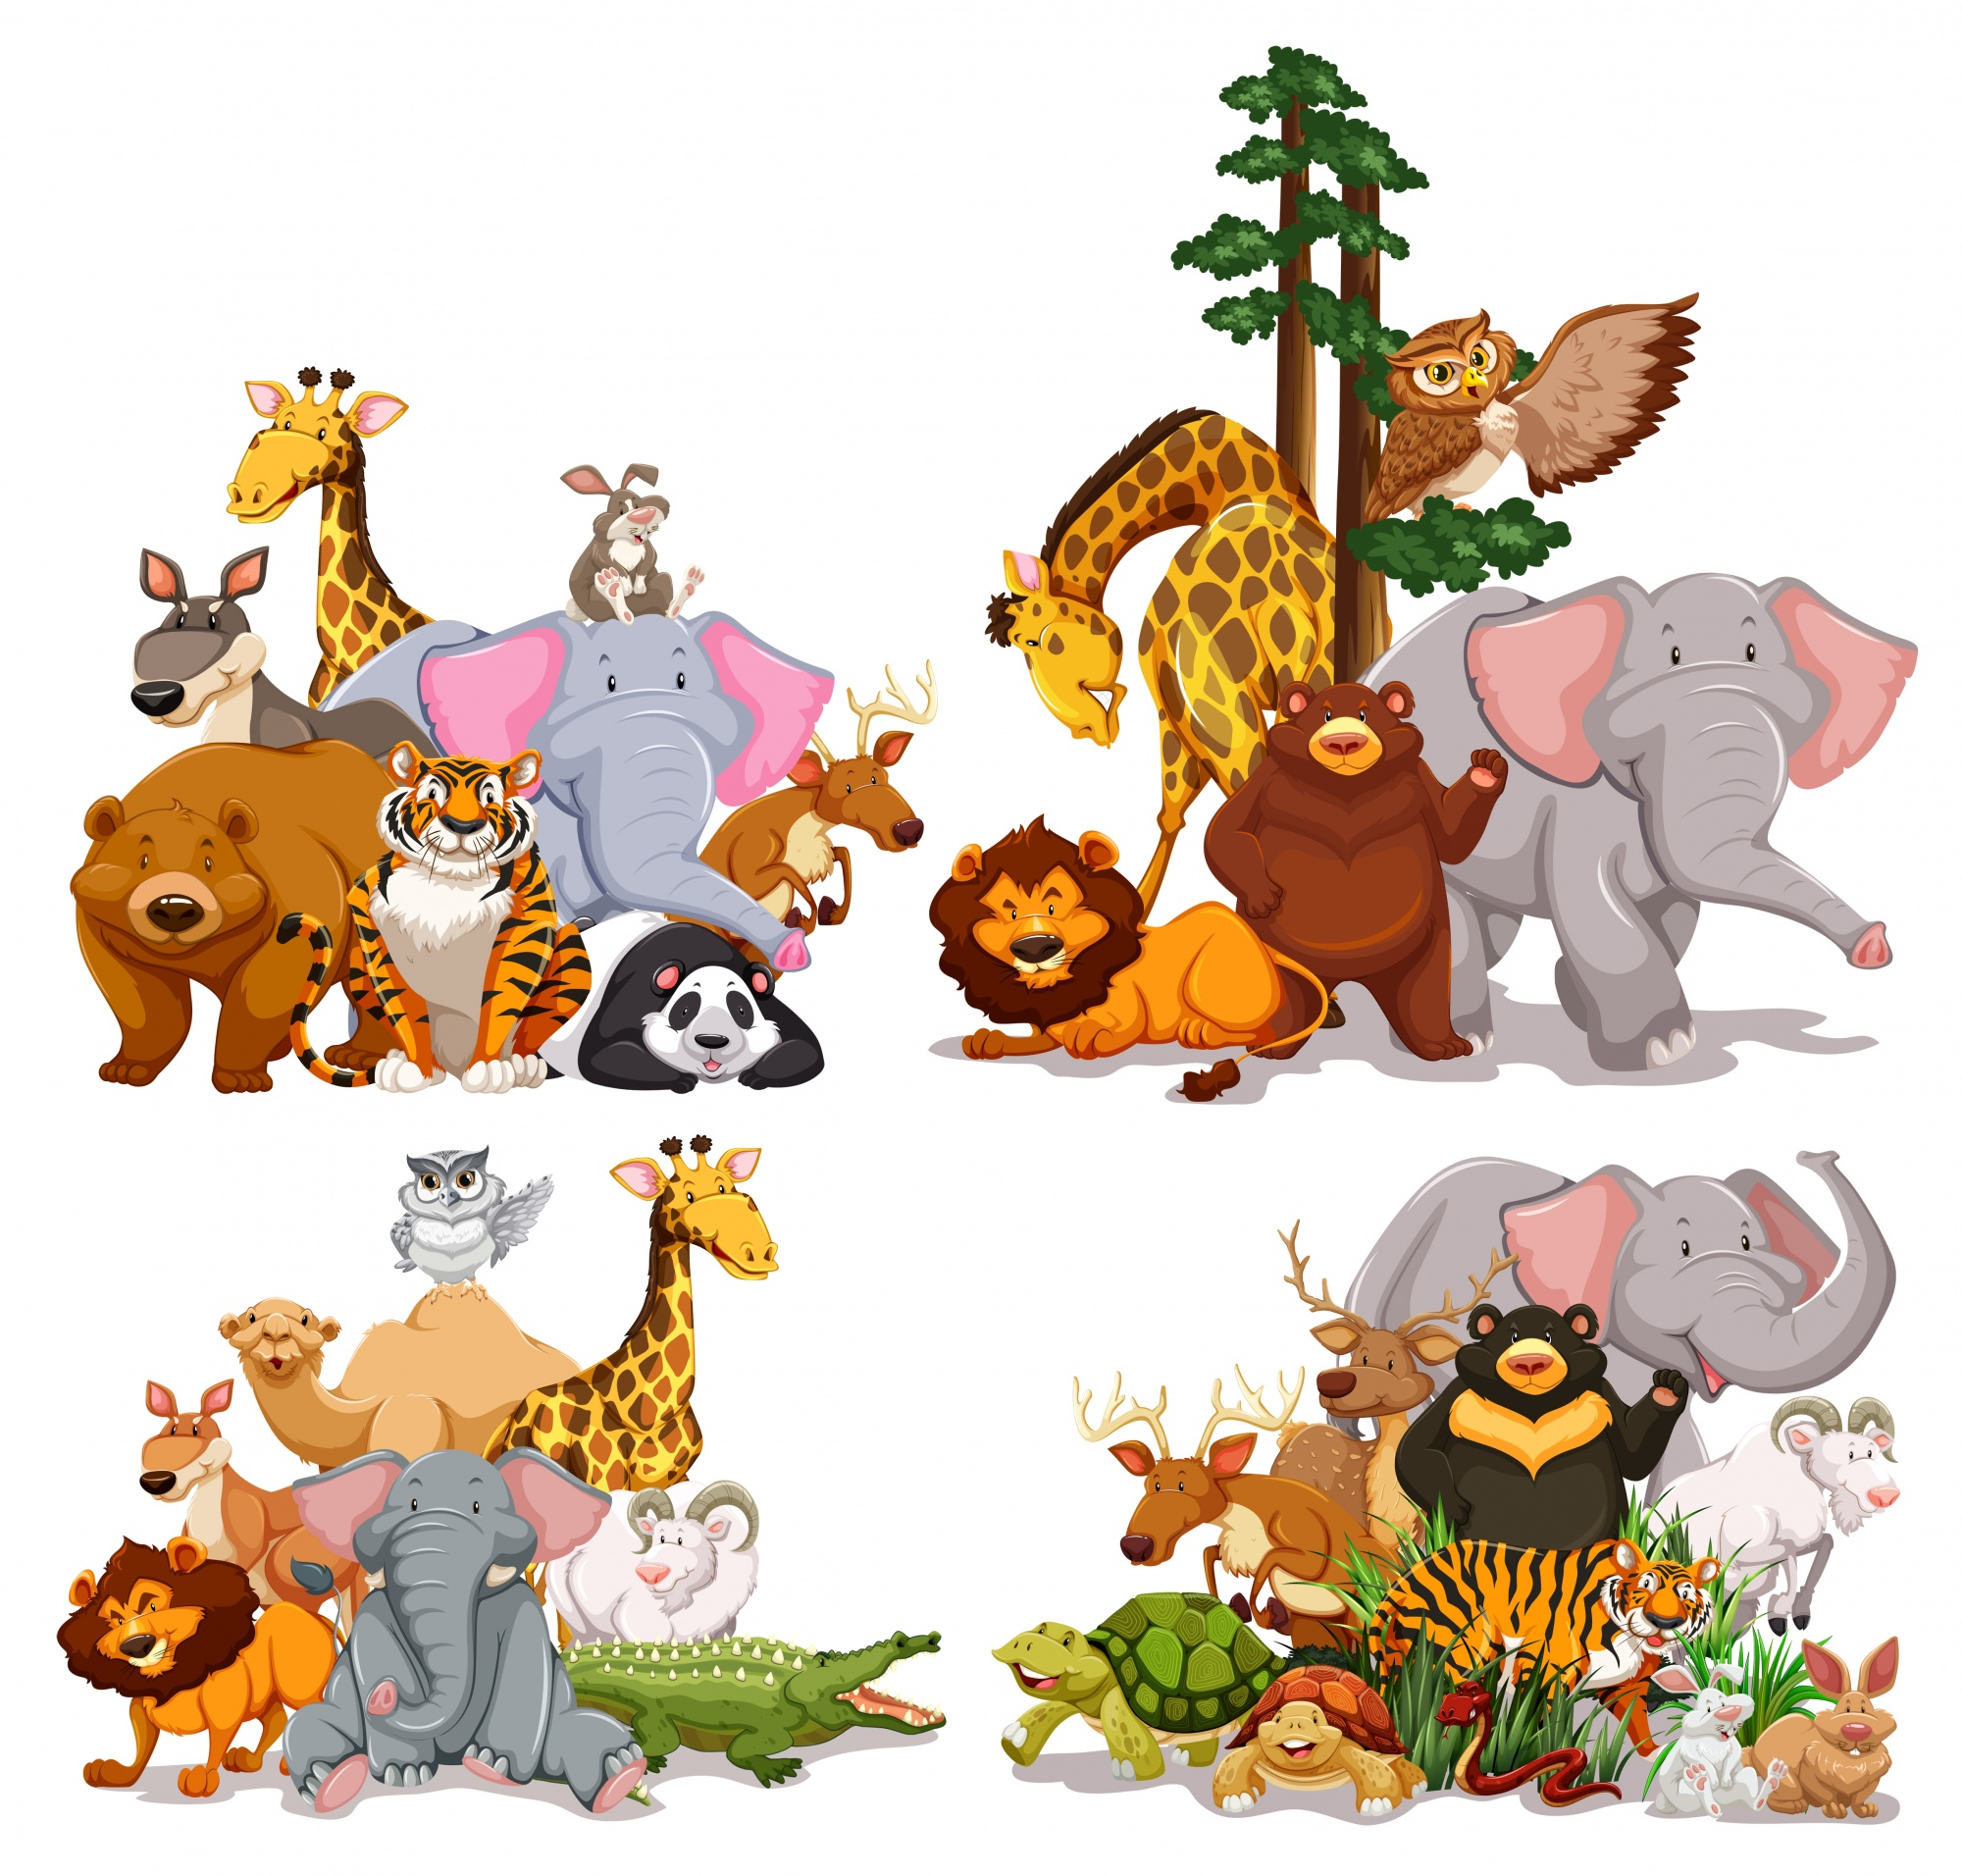 Group of different types of animals illustration